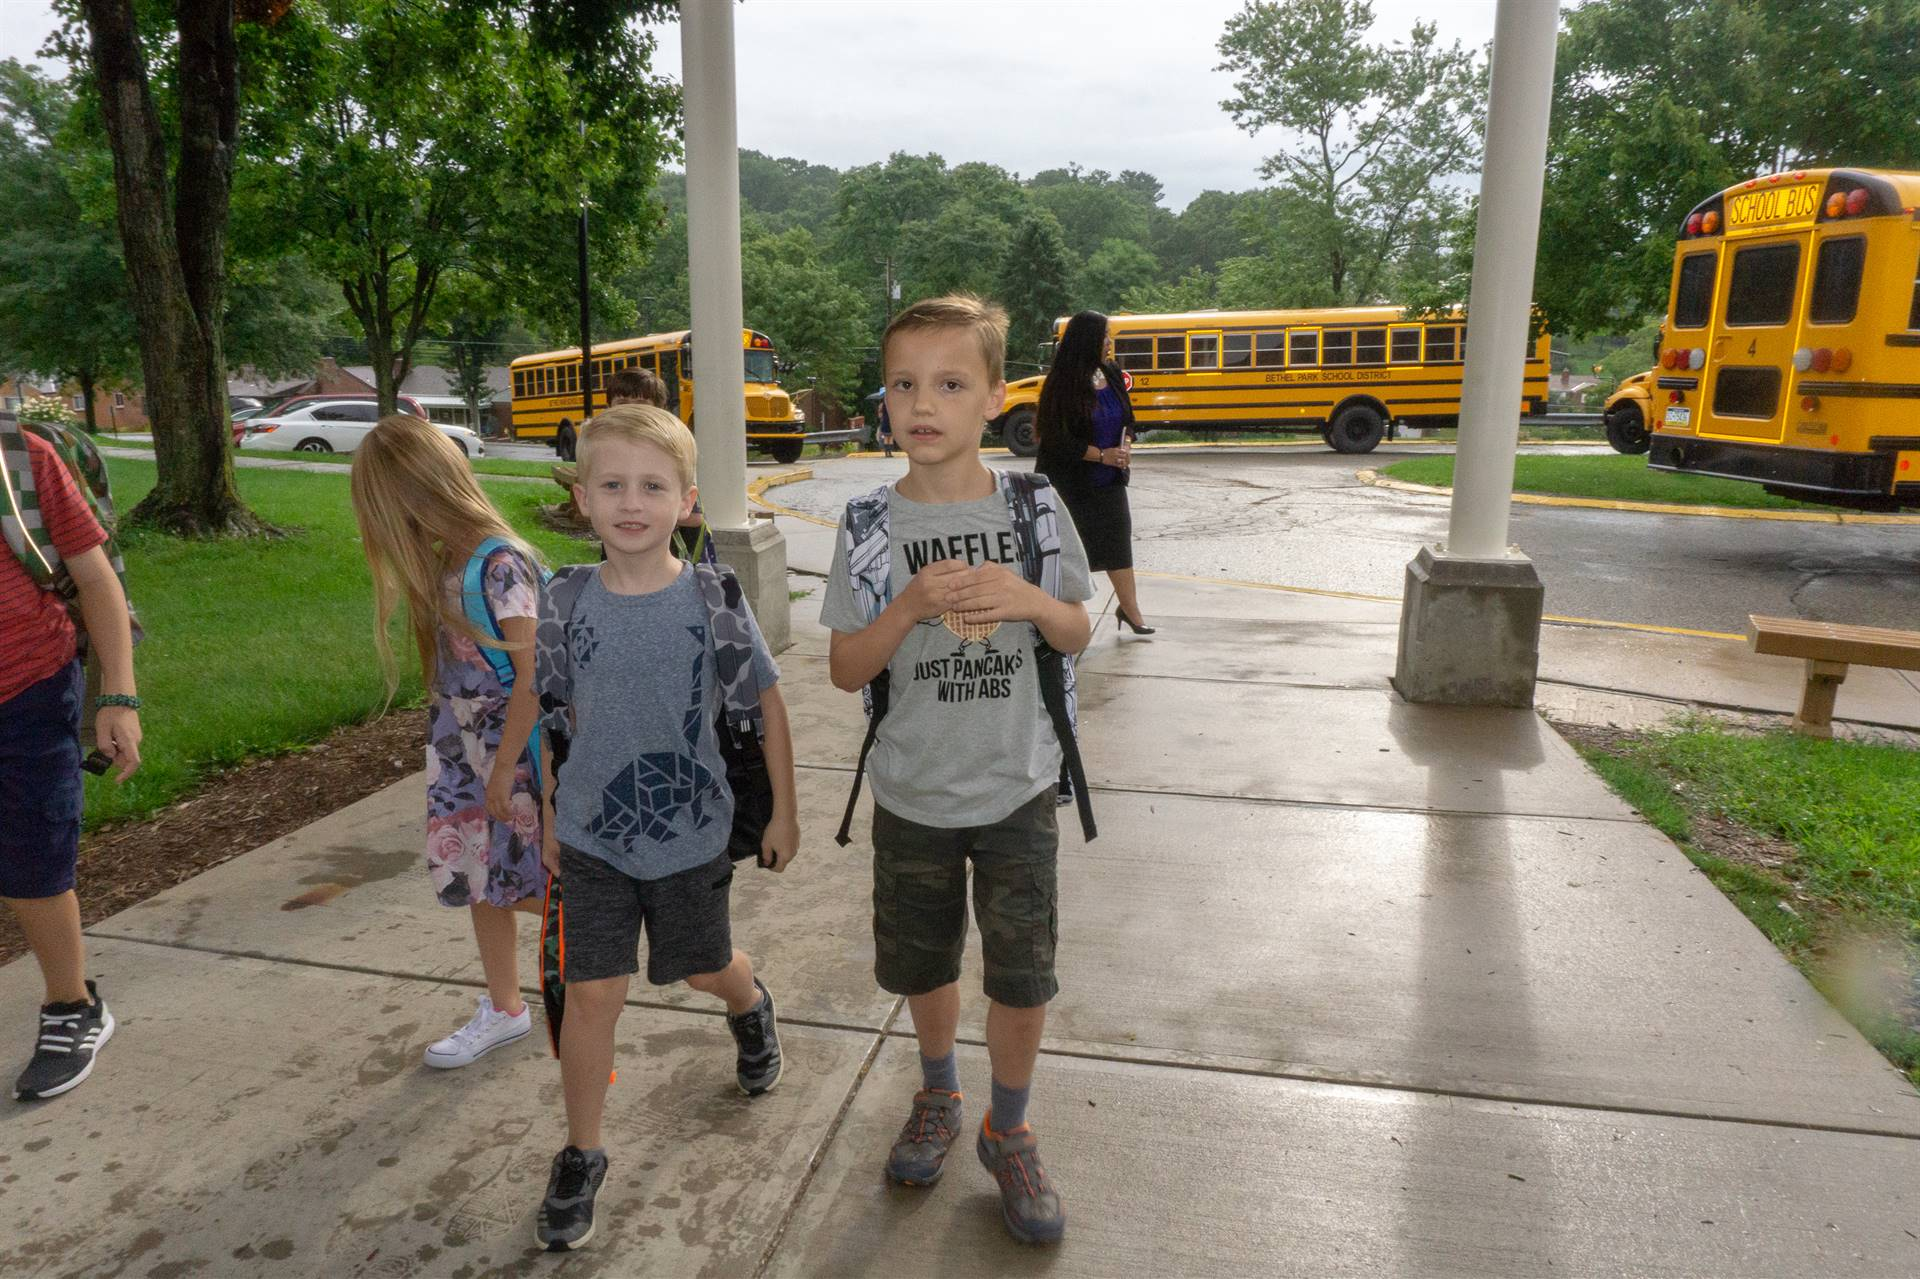 Two boys entering school on the first day.